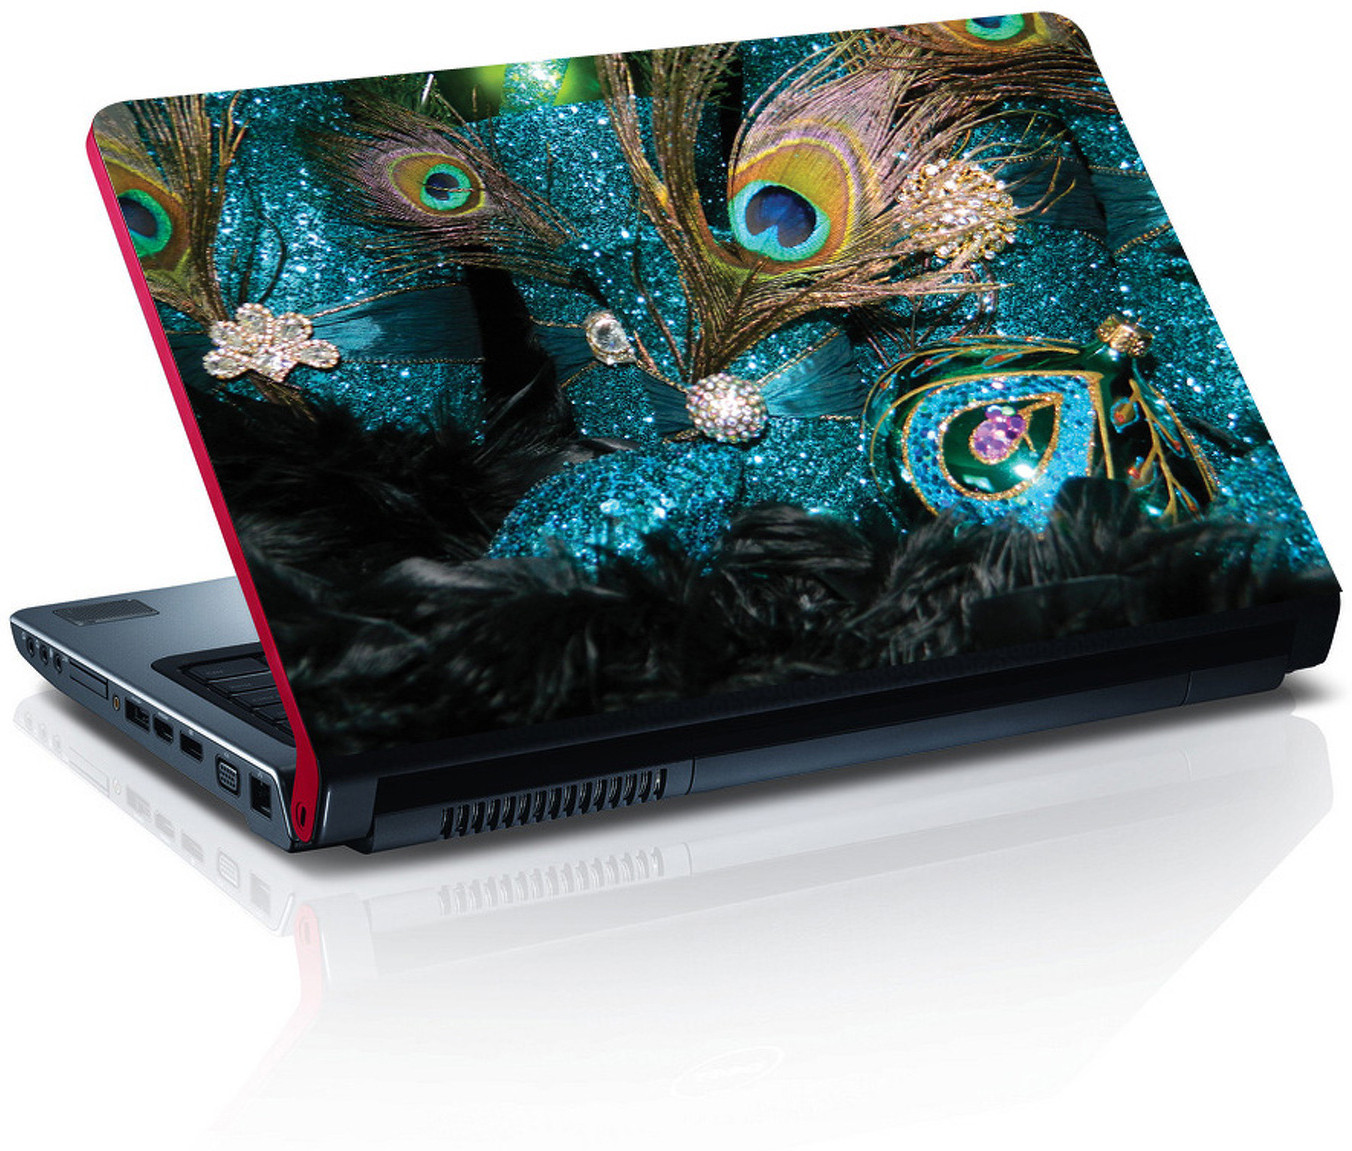 Amore Als0825 Vinyl Sheet Laptop Decal Price In India